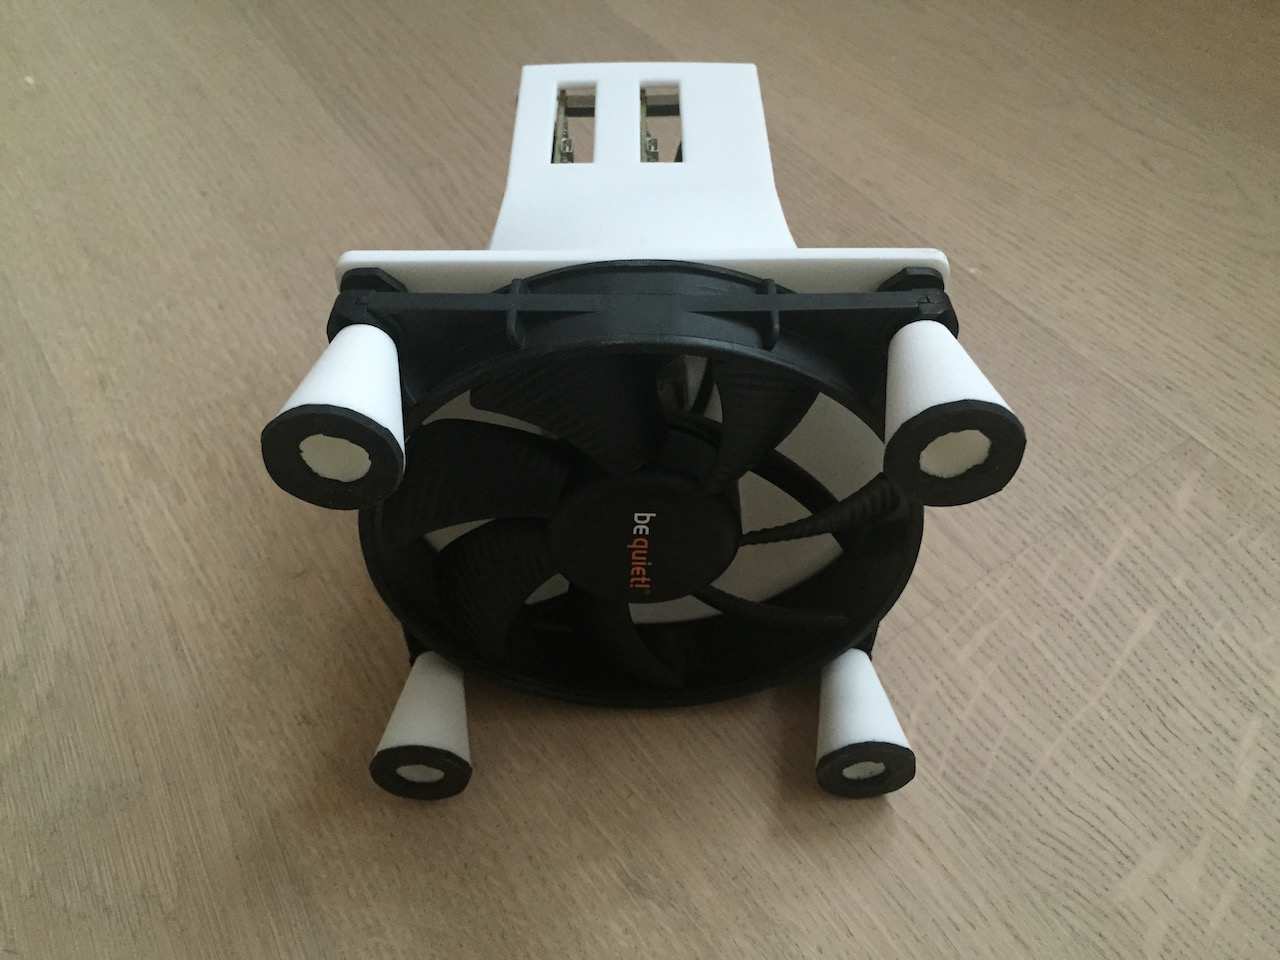 Mounted Fan